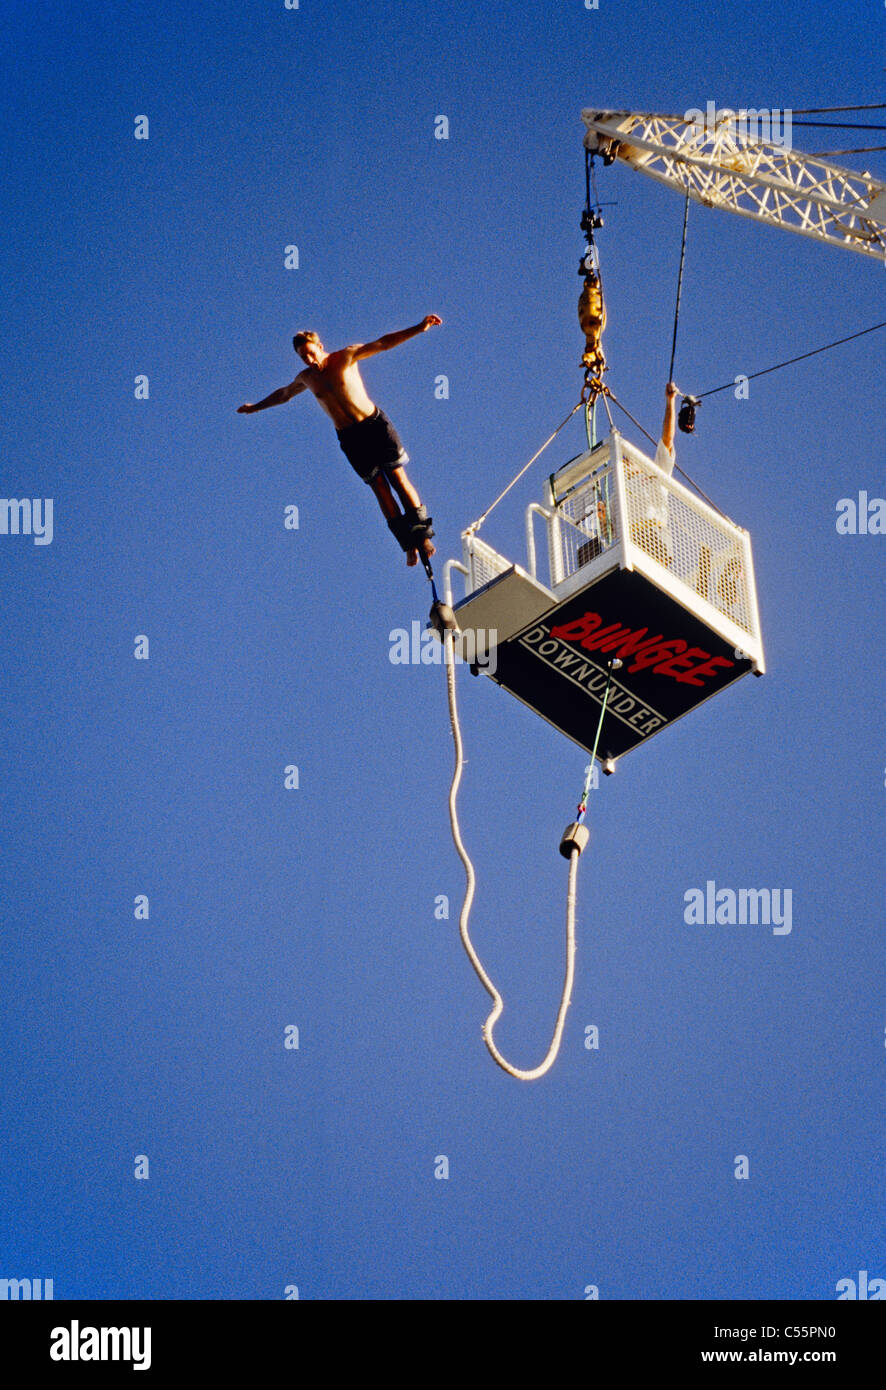 Bungee jumper at Bungee Downunder in Surfers Paradise on the Queensland Gold Coast - Stock Image